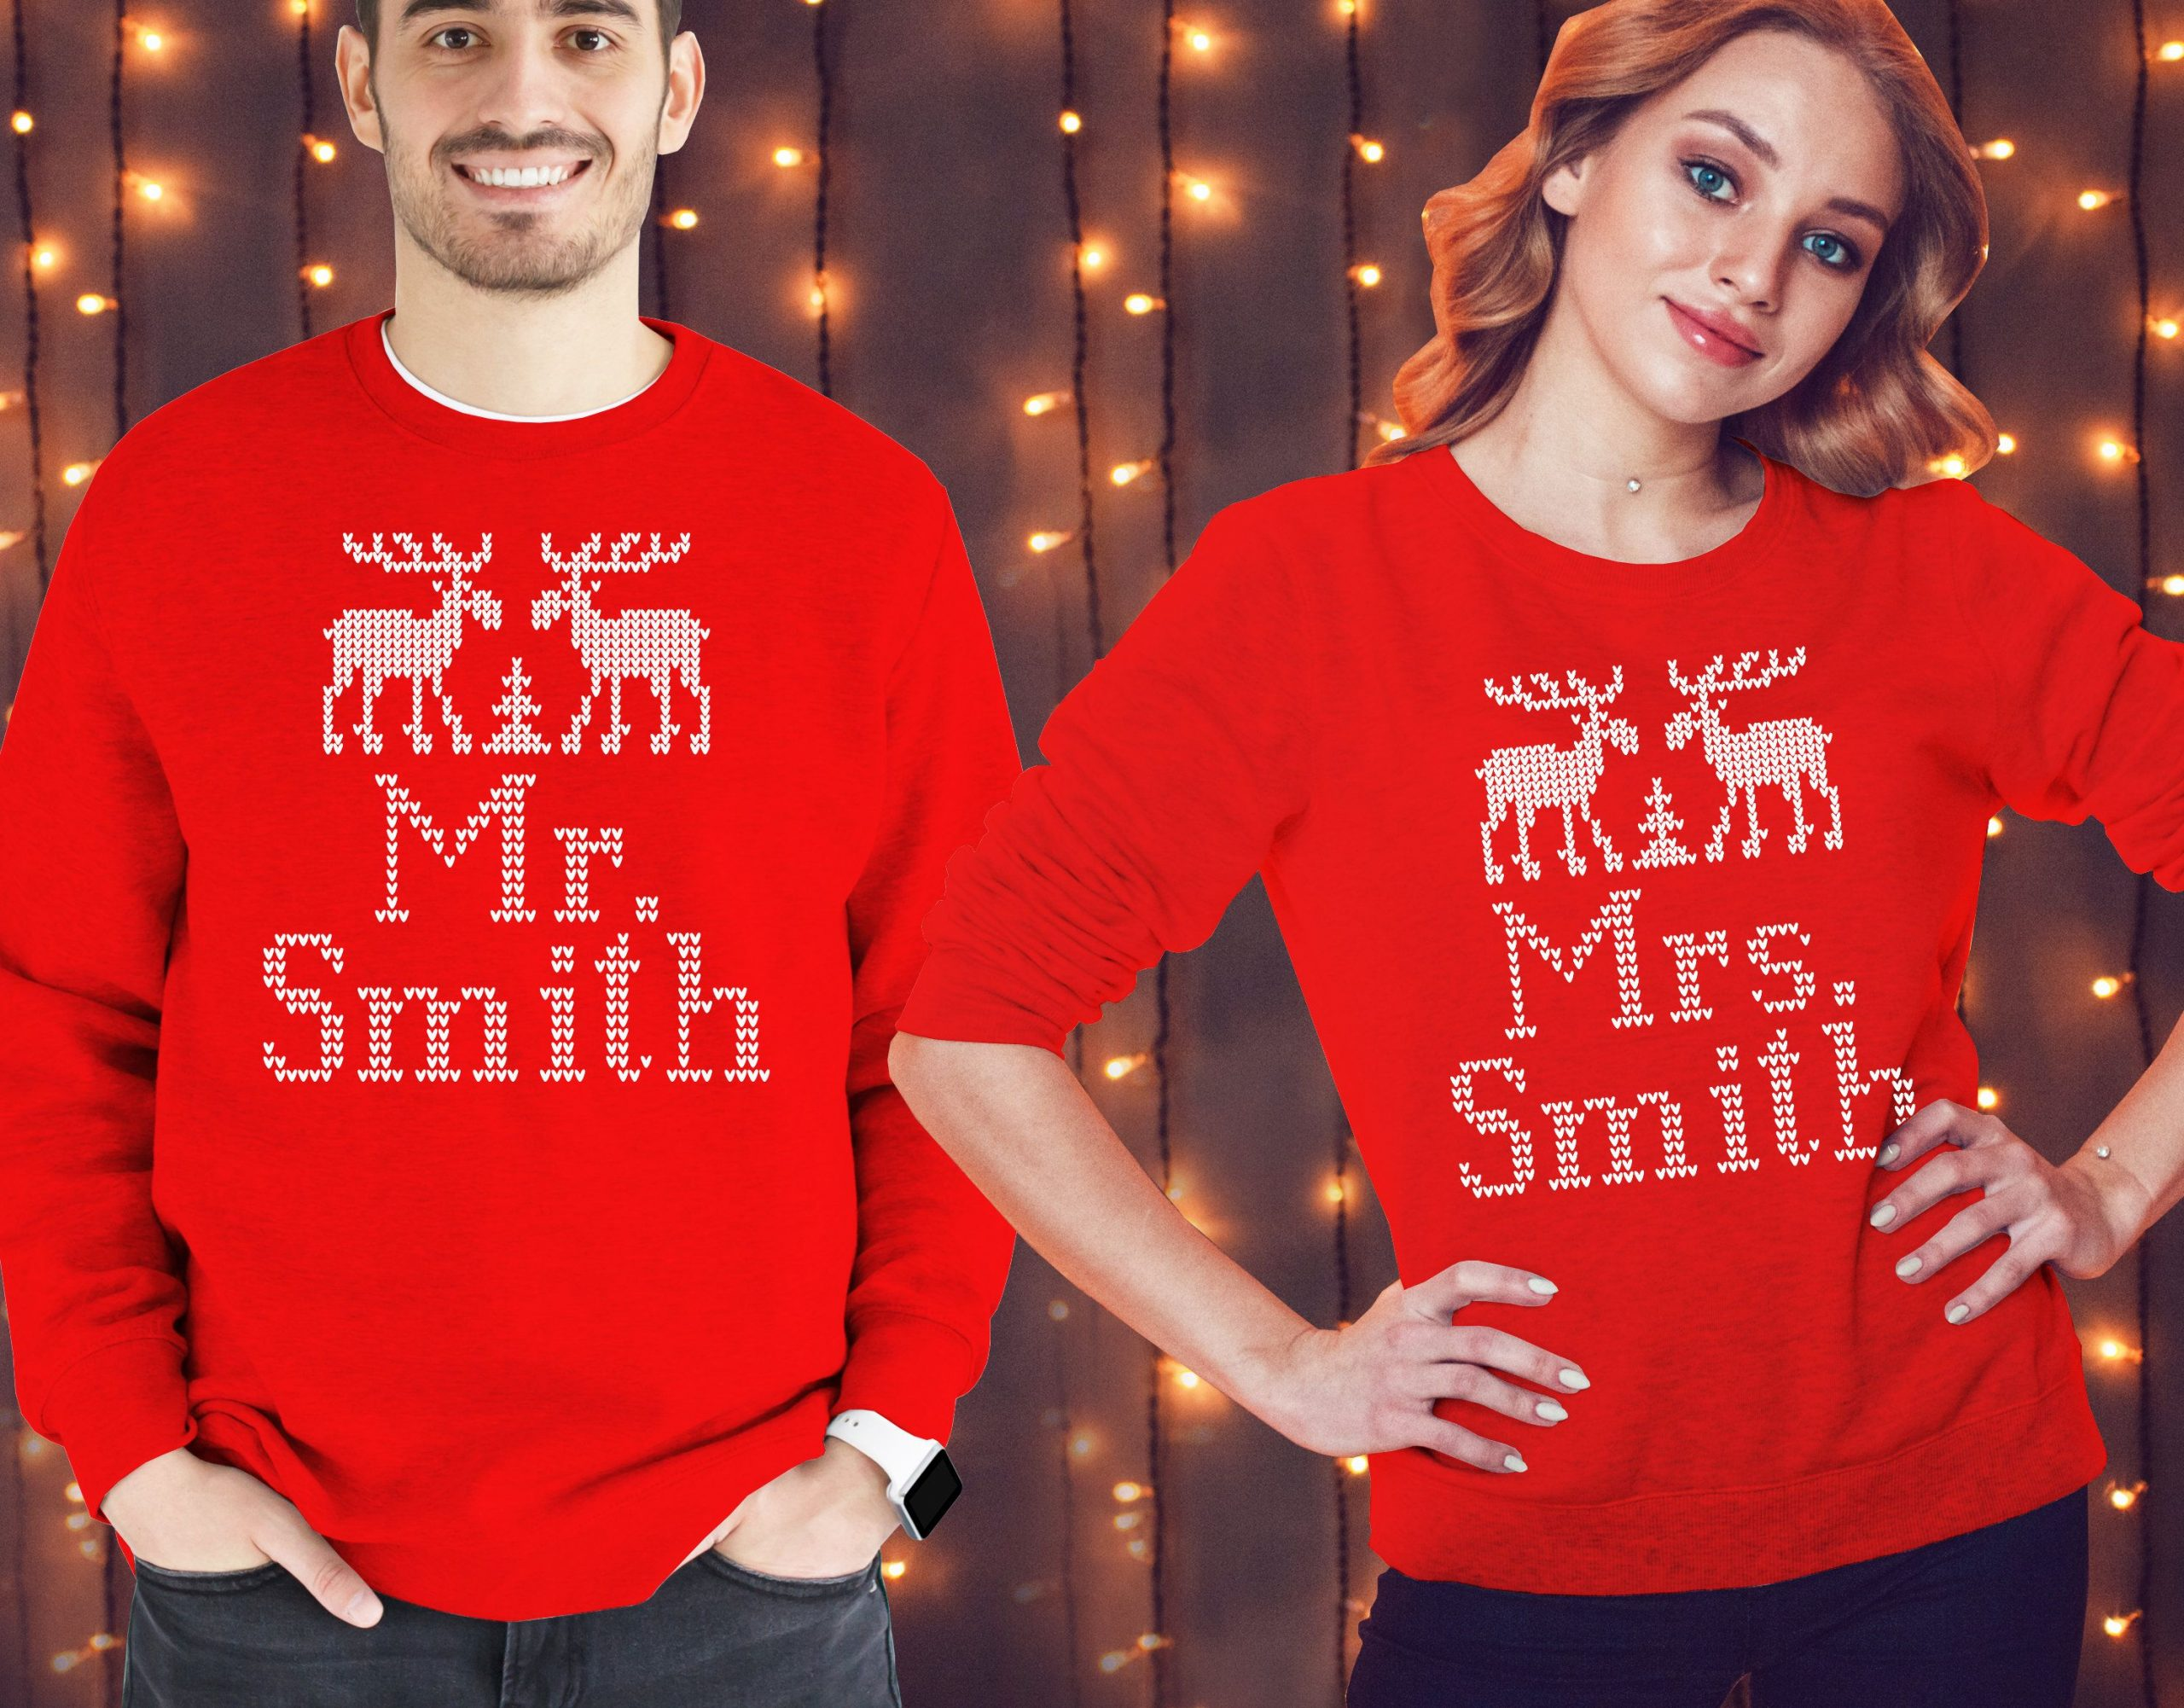 Custom Scandinavian Nordic style design Mr. and Mrs. Christmas his and her matching red jumpers sweatshirts set